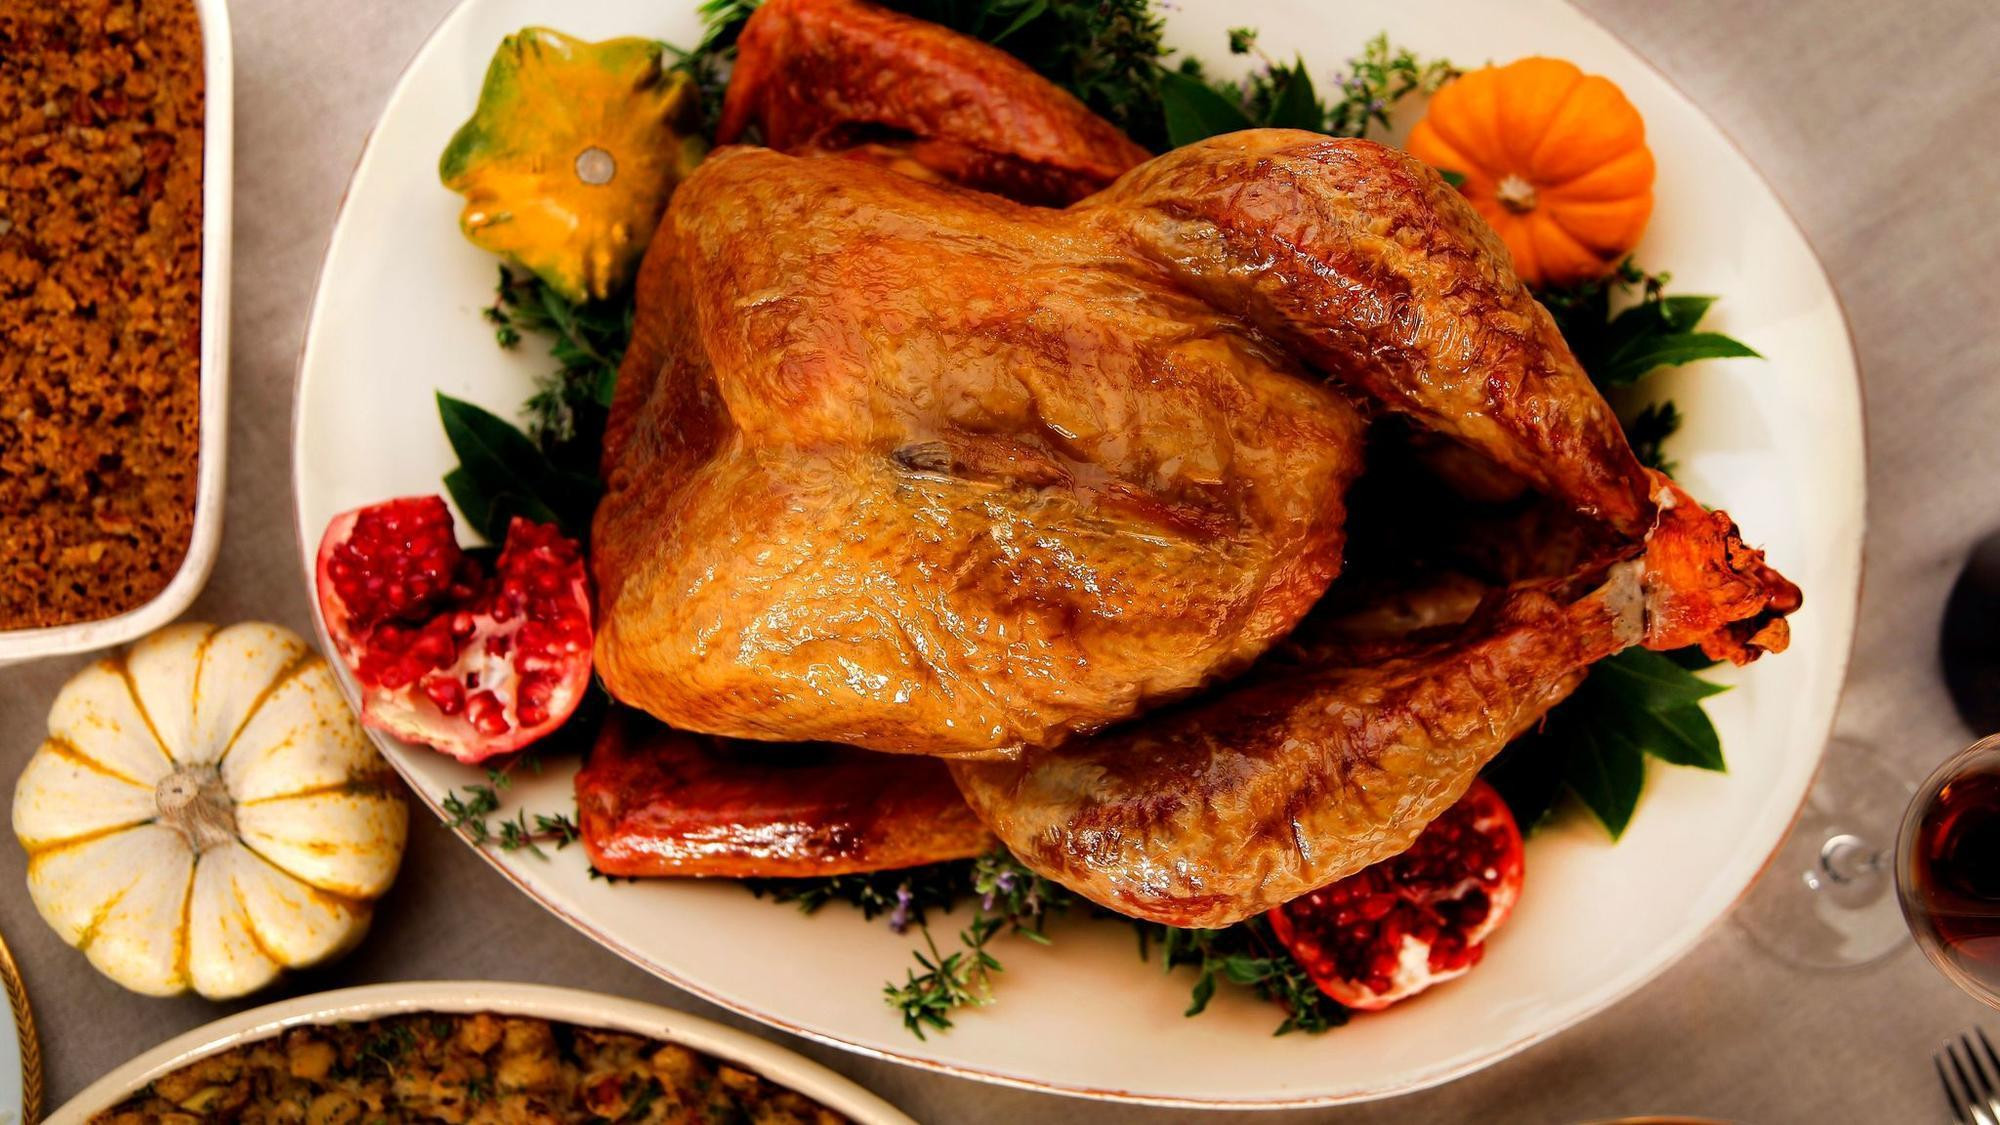 Make Thanksgiving Turkey  Turkey 101 How to cook a Thanksgiving turkey LA Times